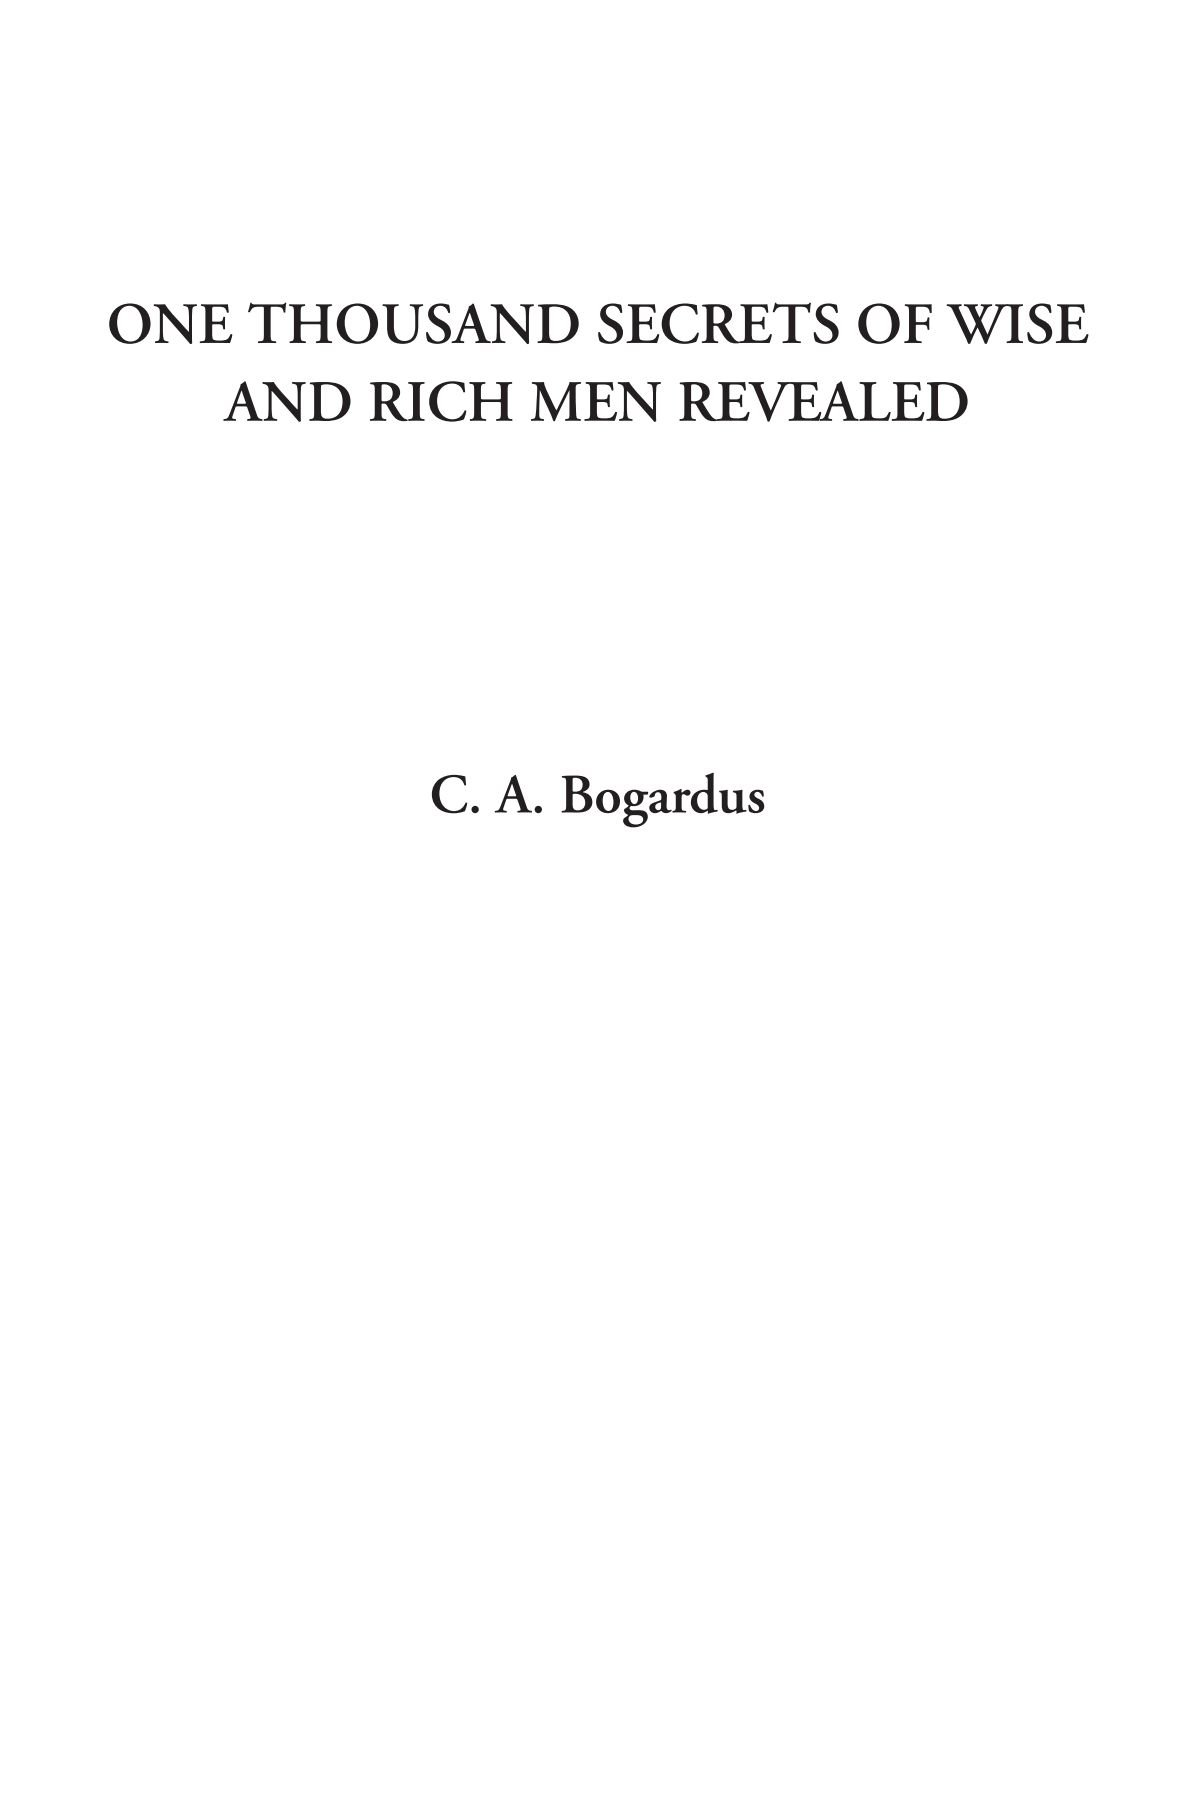 Download One Thousand Secrets of Wise and Rich Men Revealed PDF